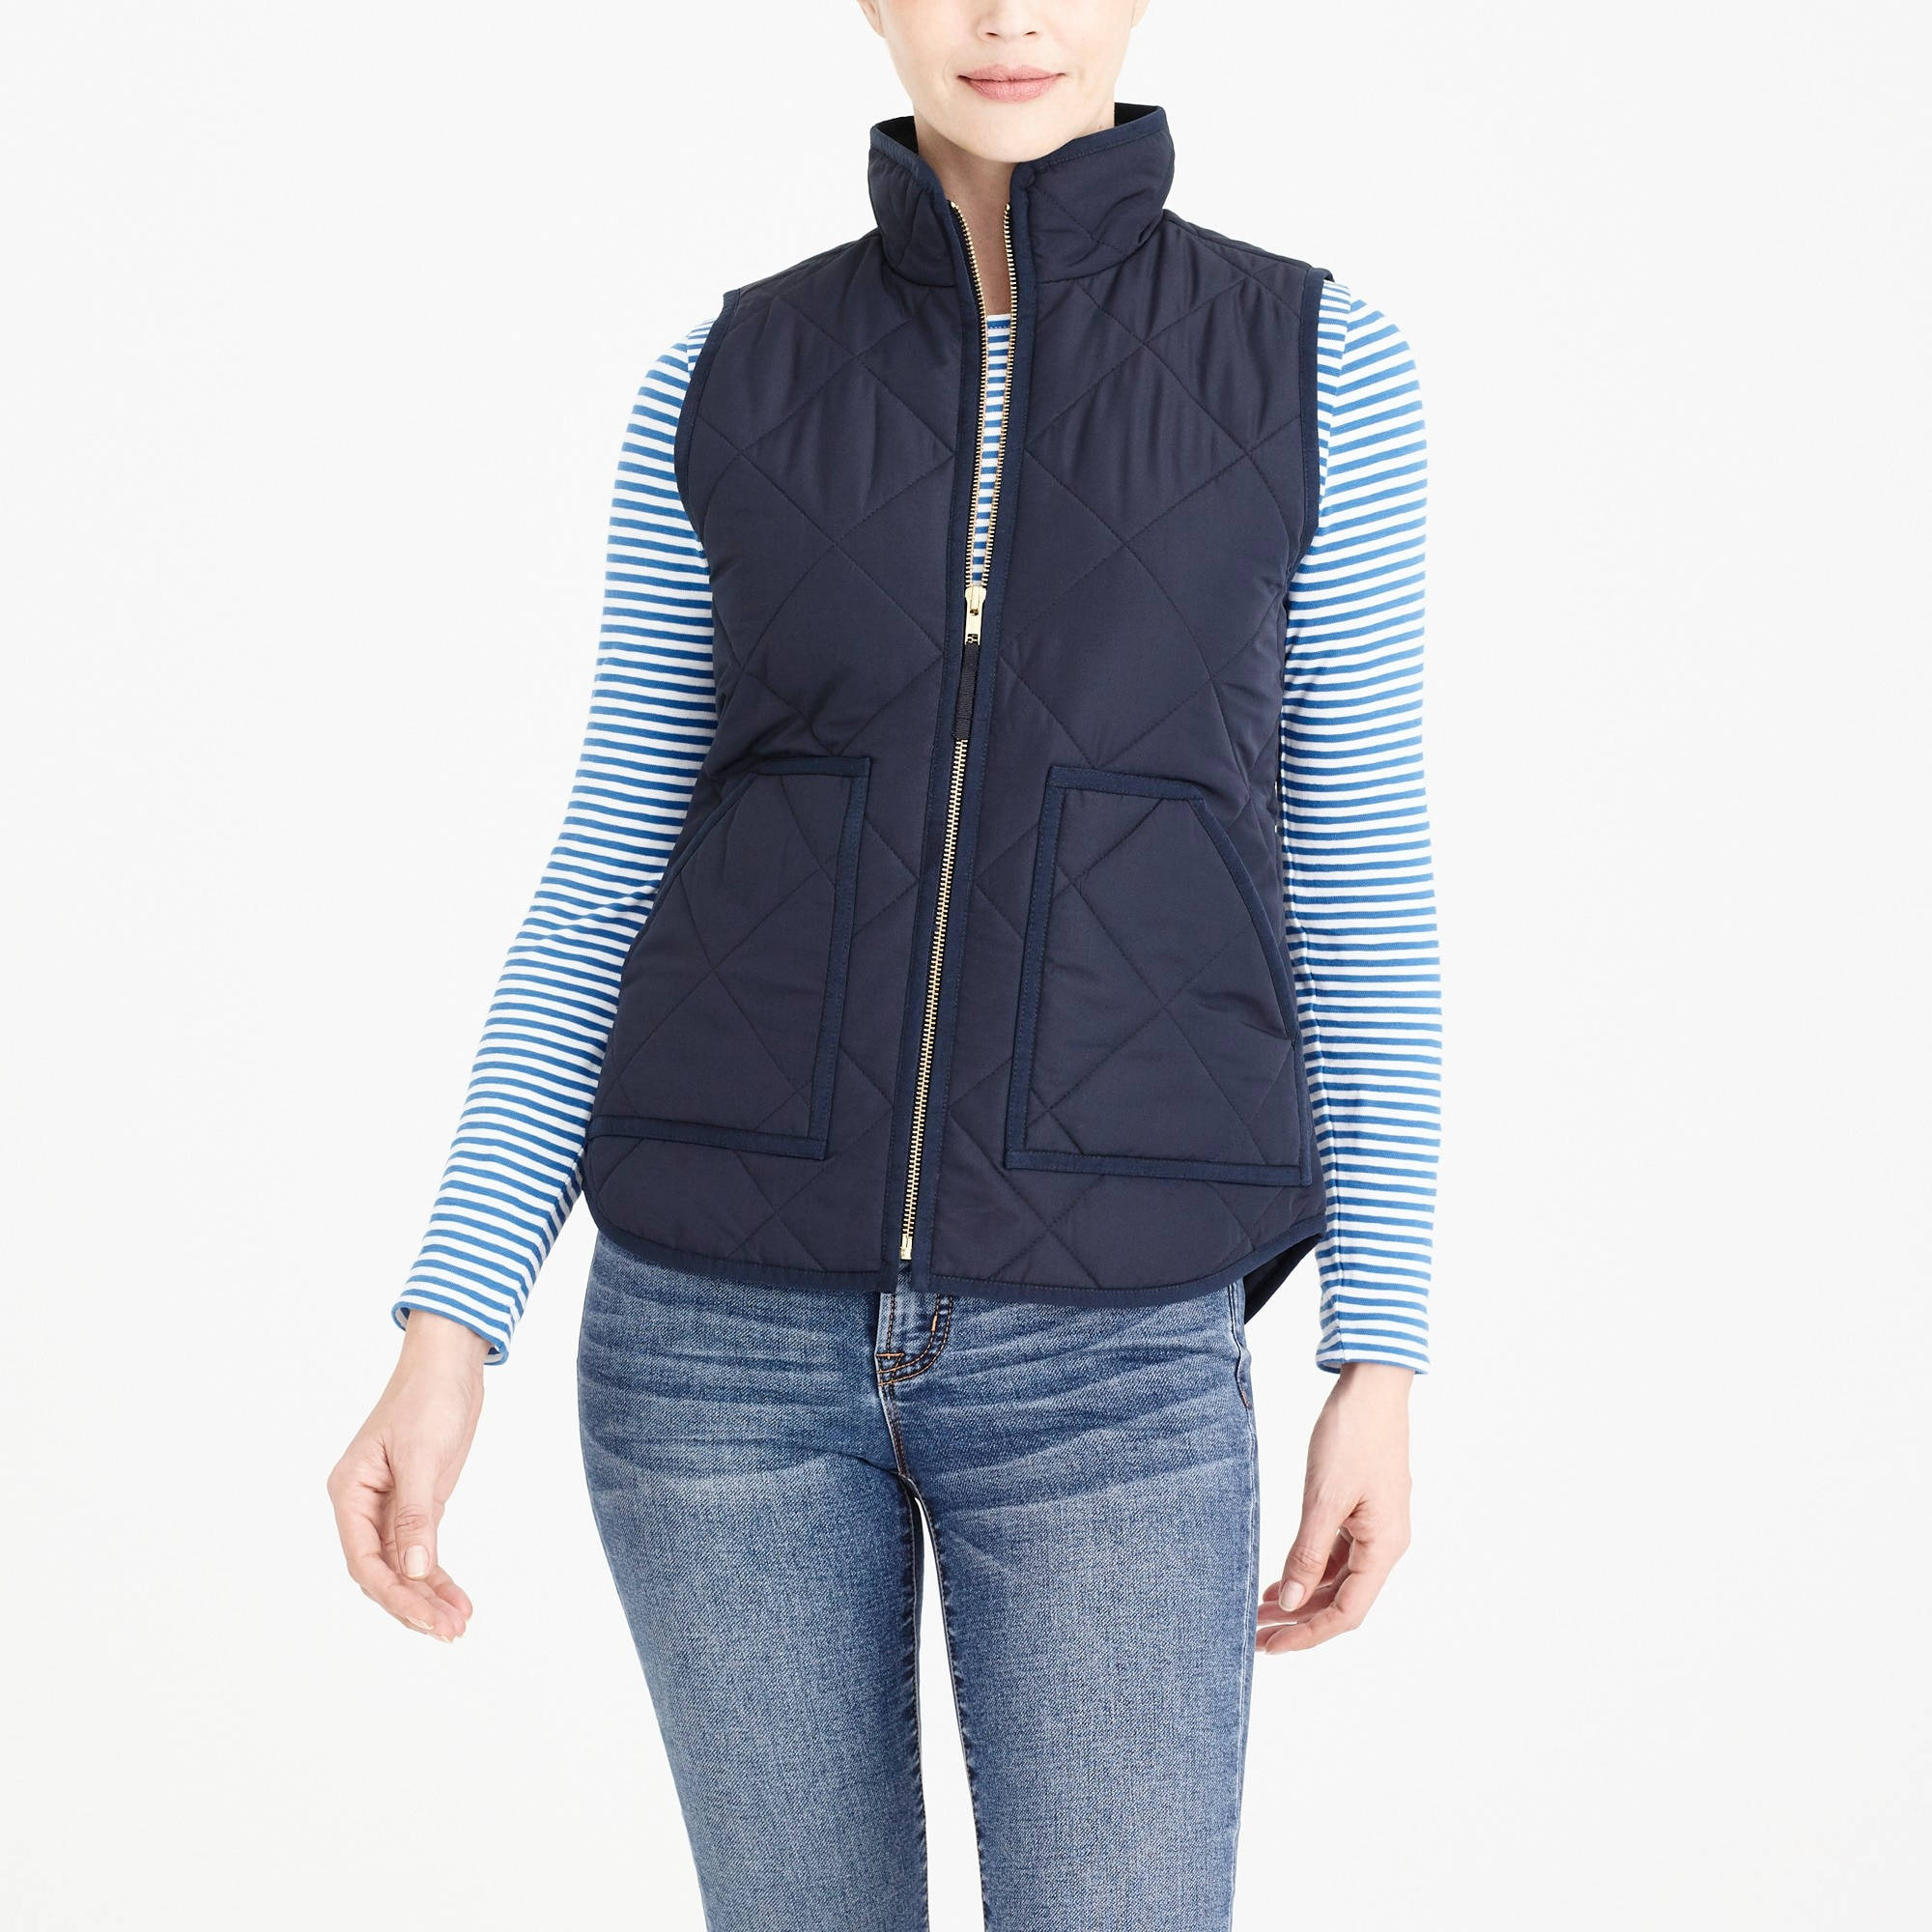 Image 1 for J.Crew Mercantile quilted puffer vest